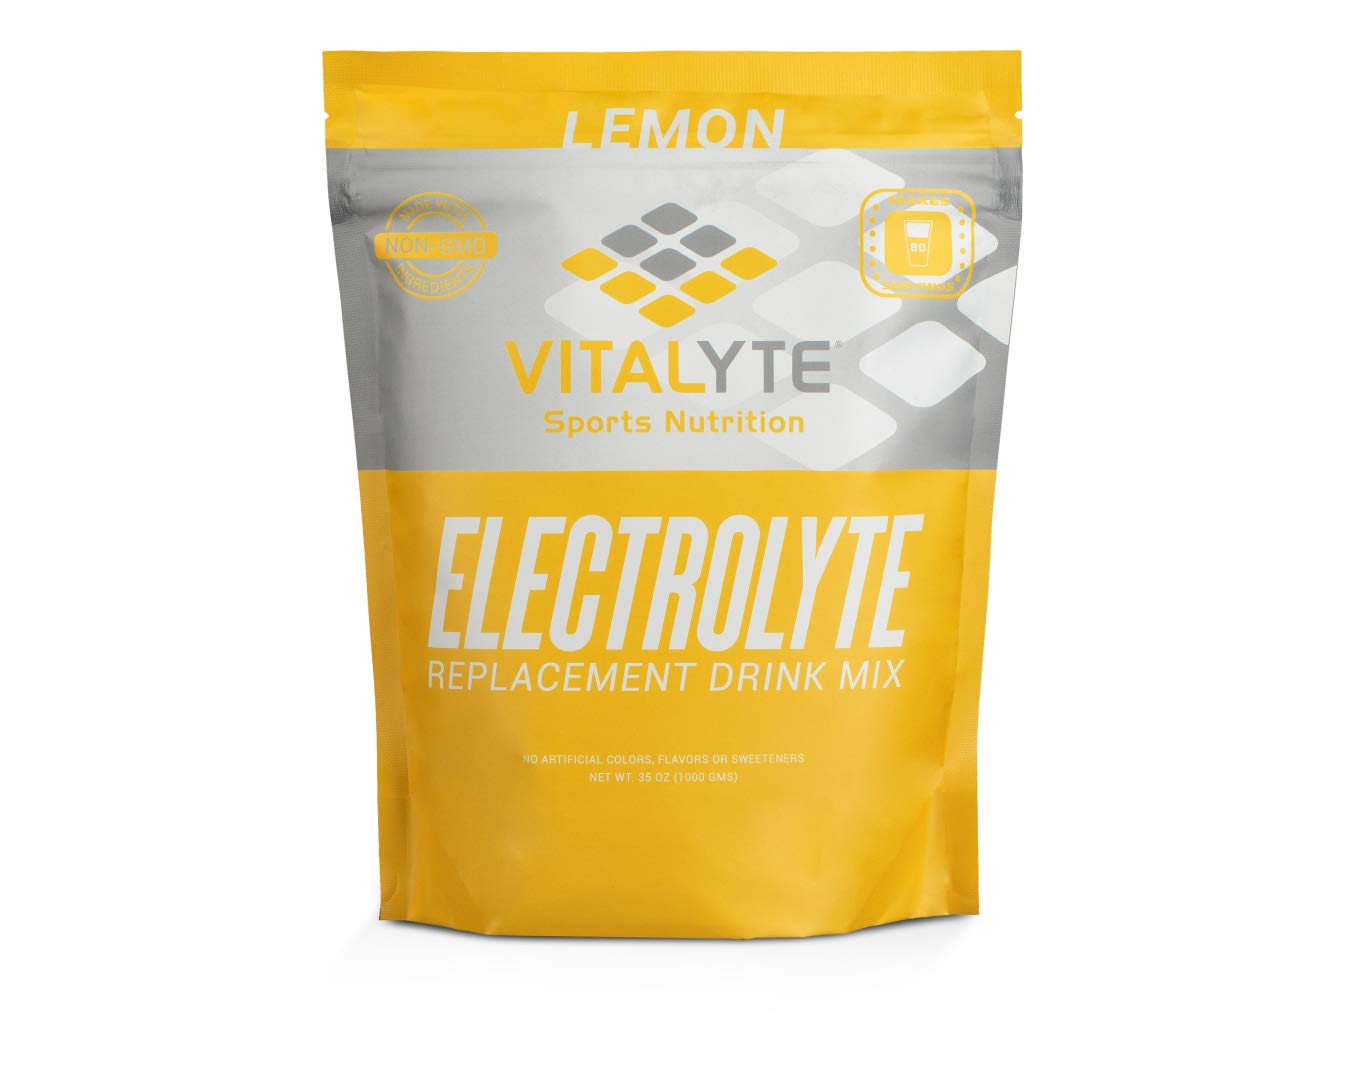 Vitalyte Natural Electrolyte Powder Drink Mix, Gluten Free, 40 2 Cup Servings Per Container (LEMON-2PACK)